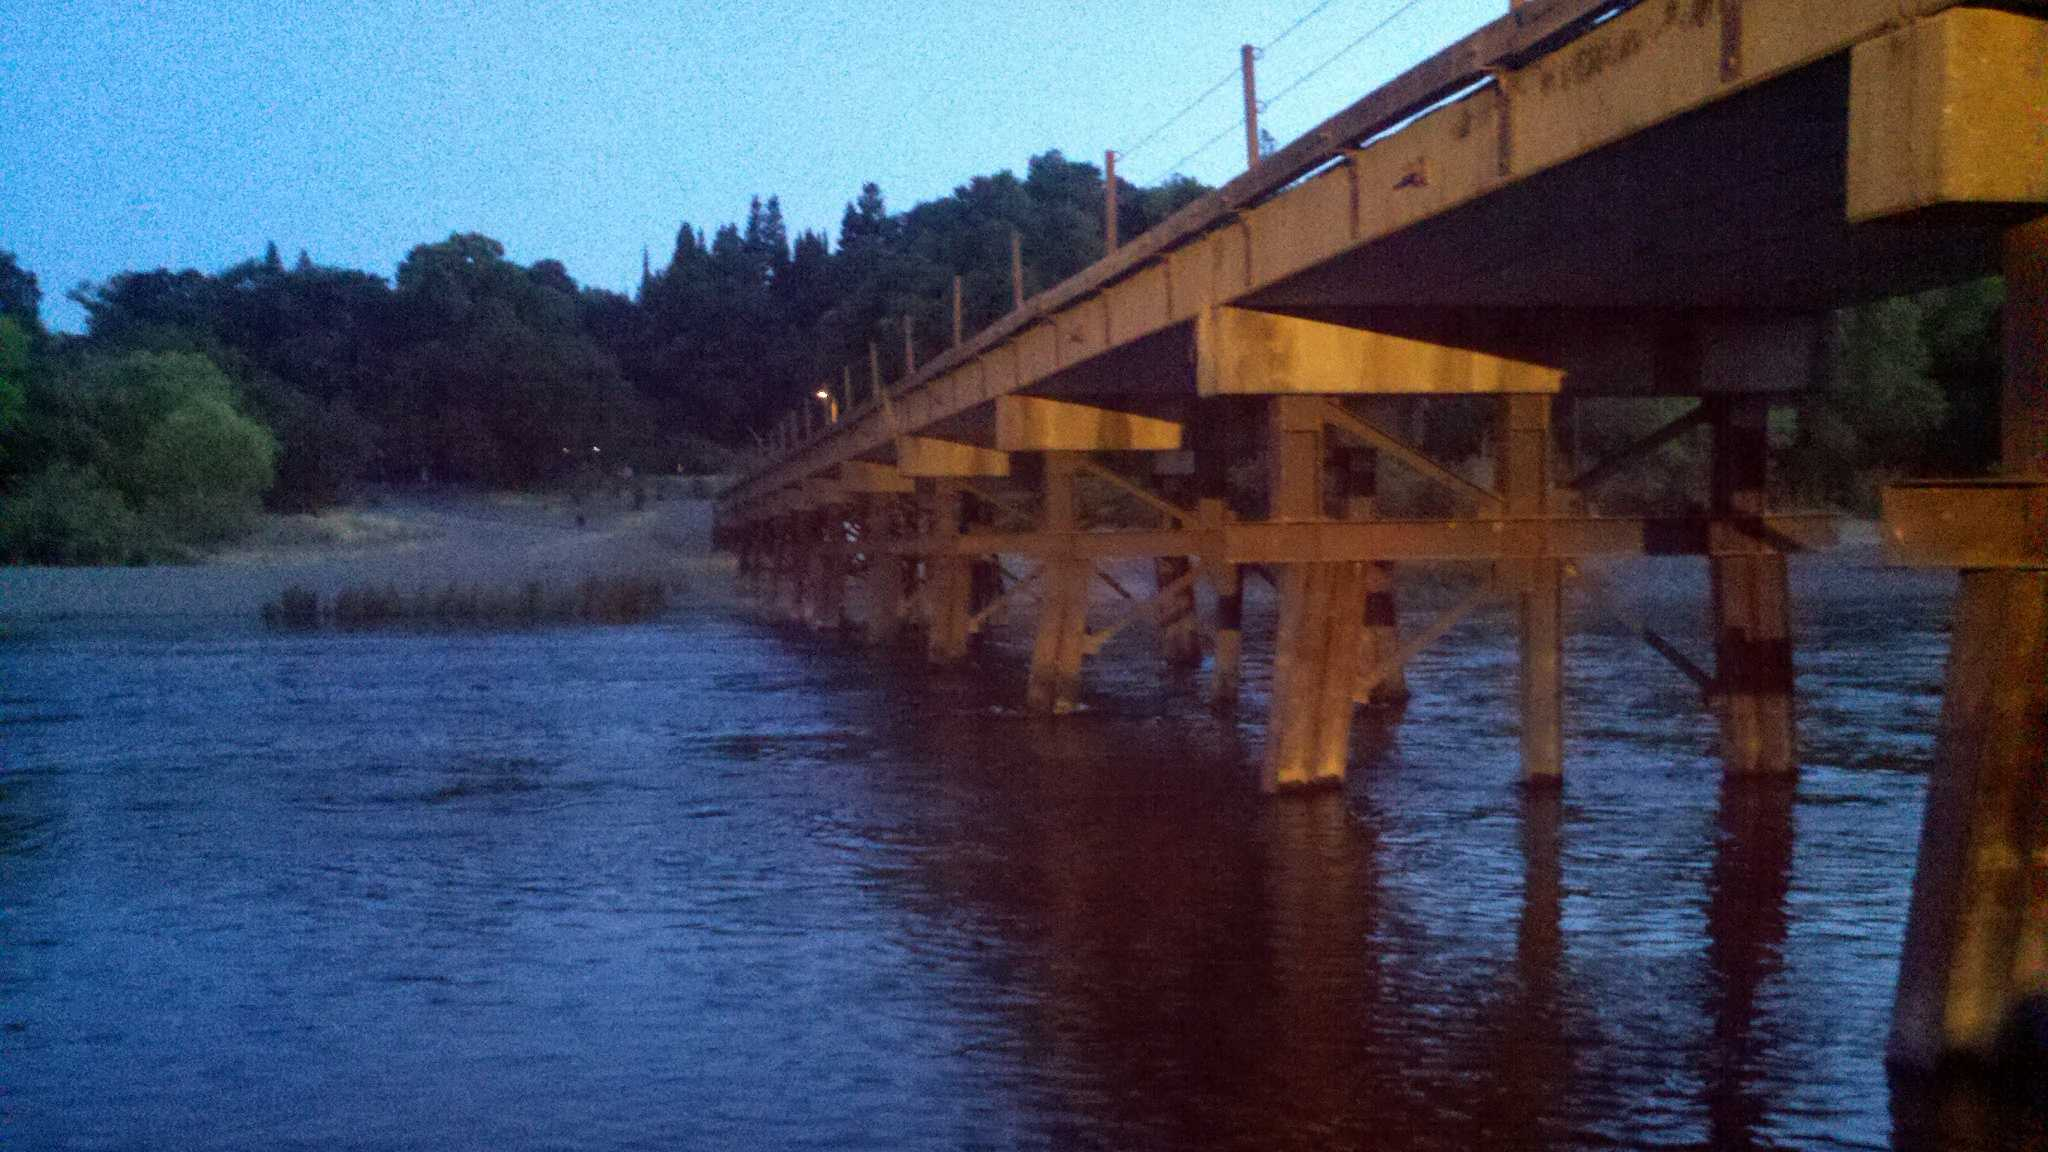 The American River at the Sunrise foot bridge (July 13, 2012).